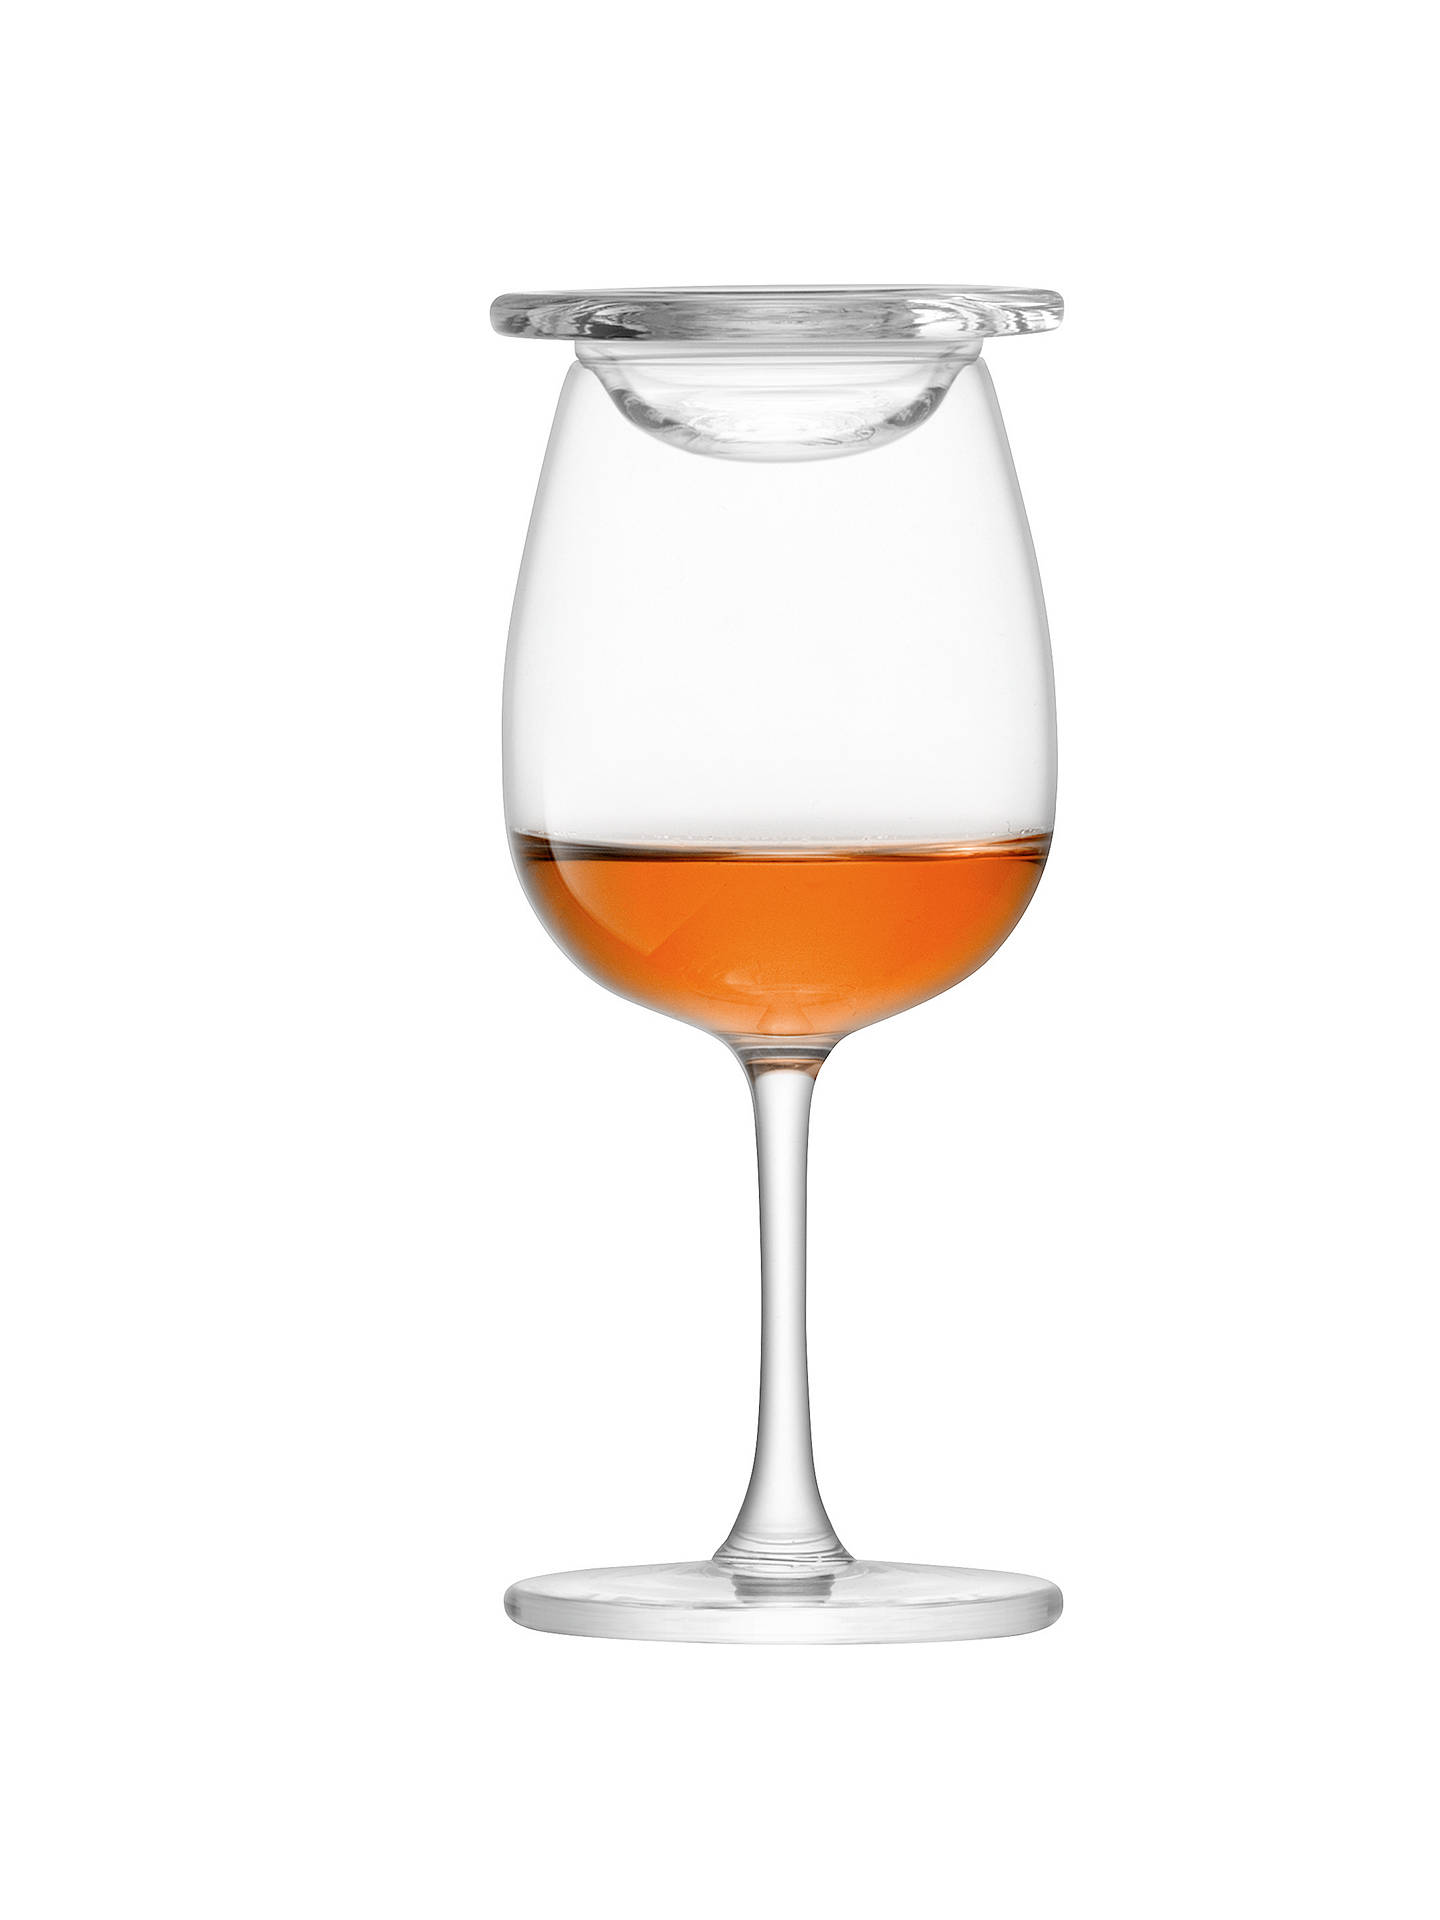 lsa international whisky stem nosing glasses with glass covers set of 2 at john lewis partners. Black Bedroom Furniture Sets. Home Design Ideas